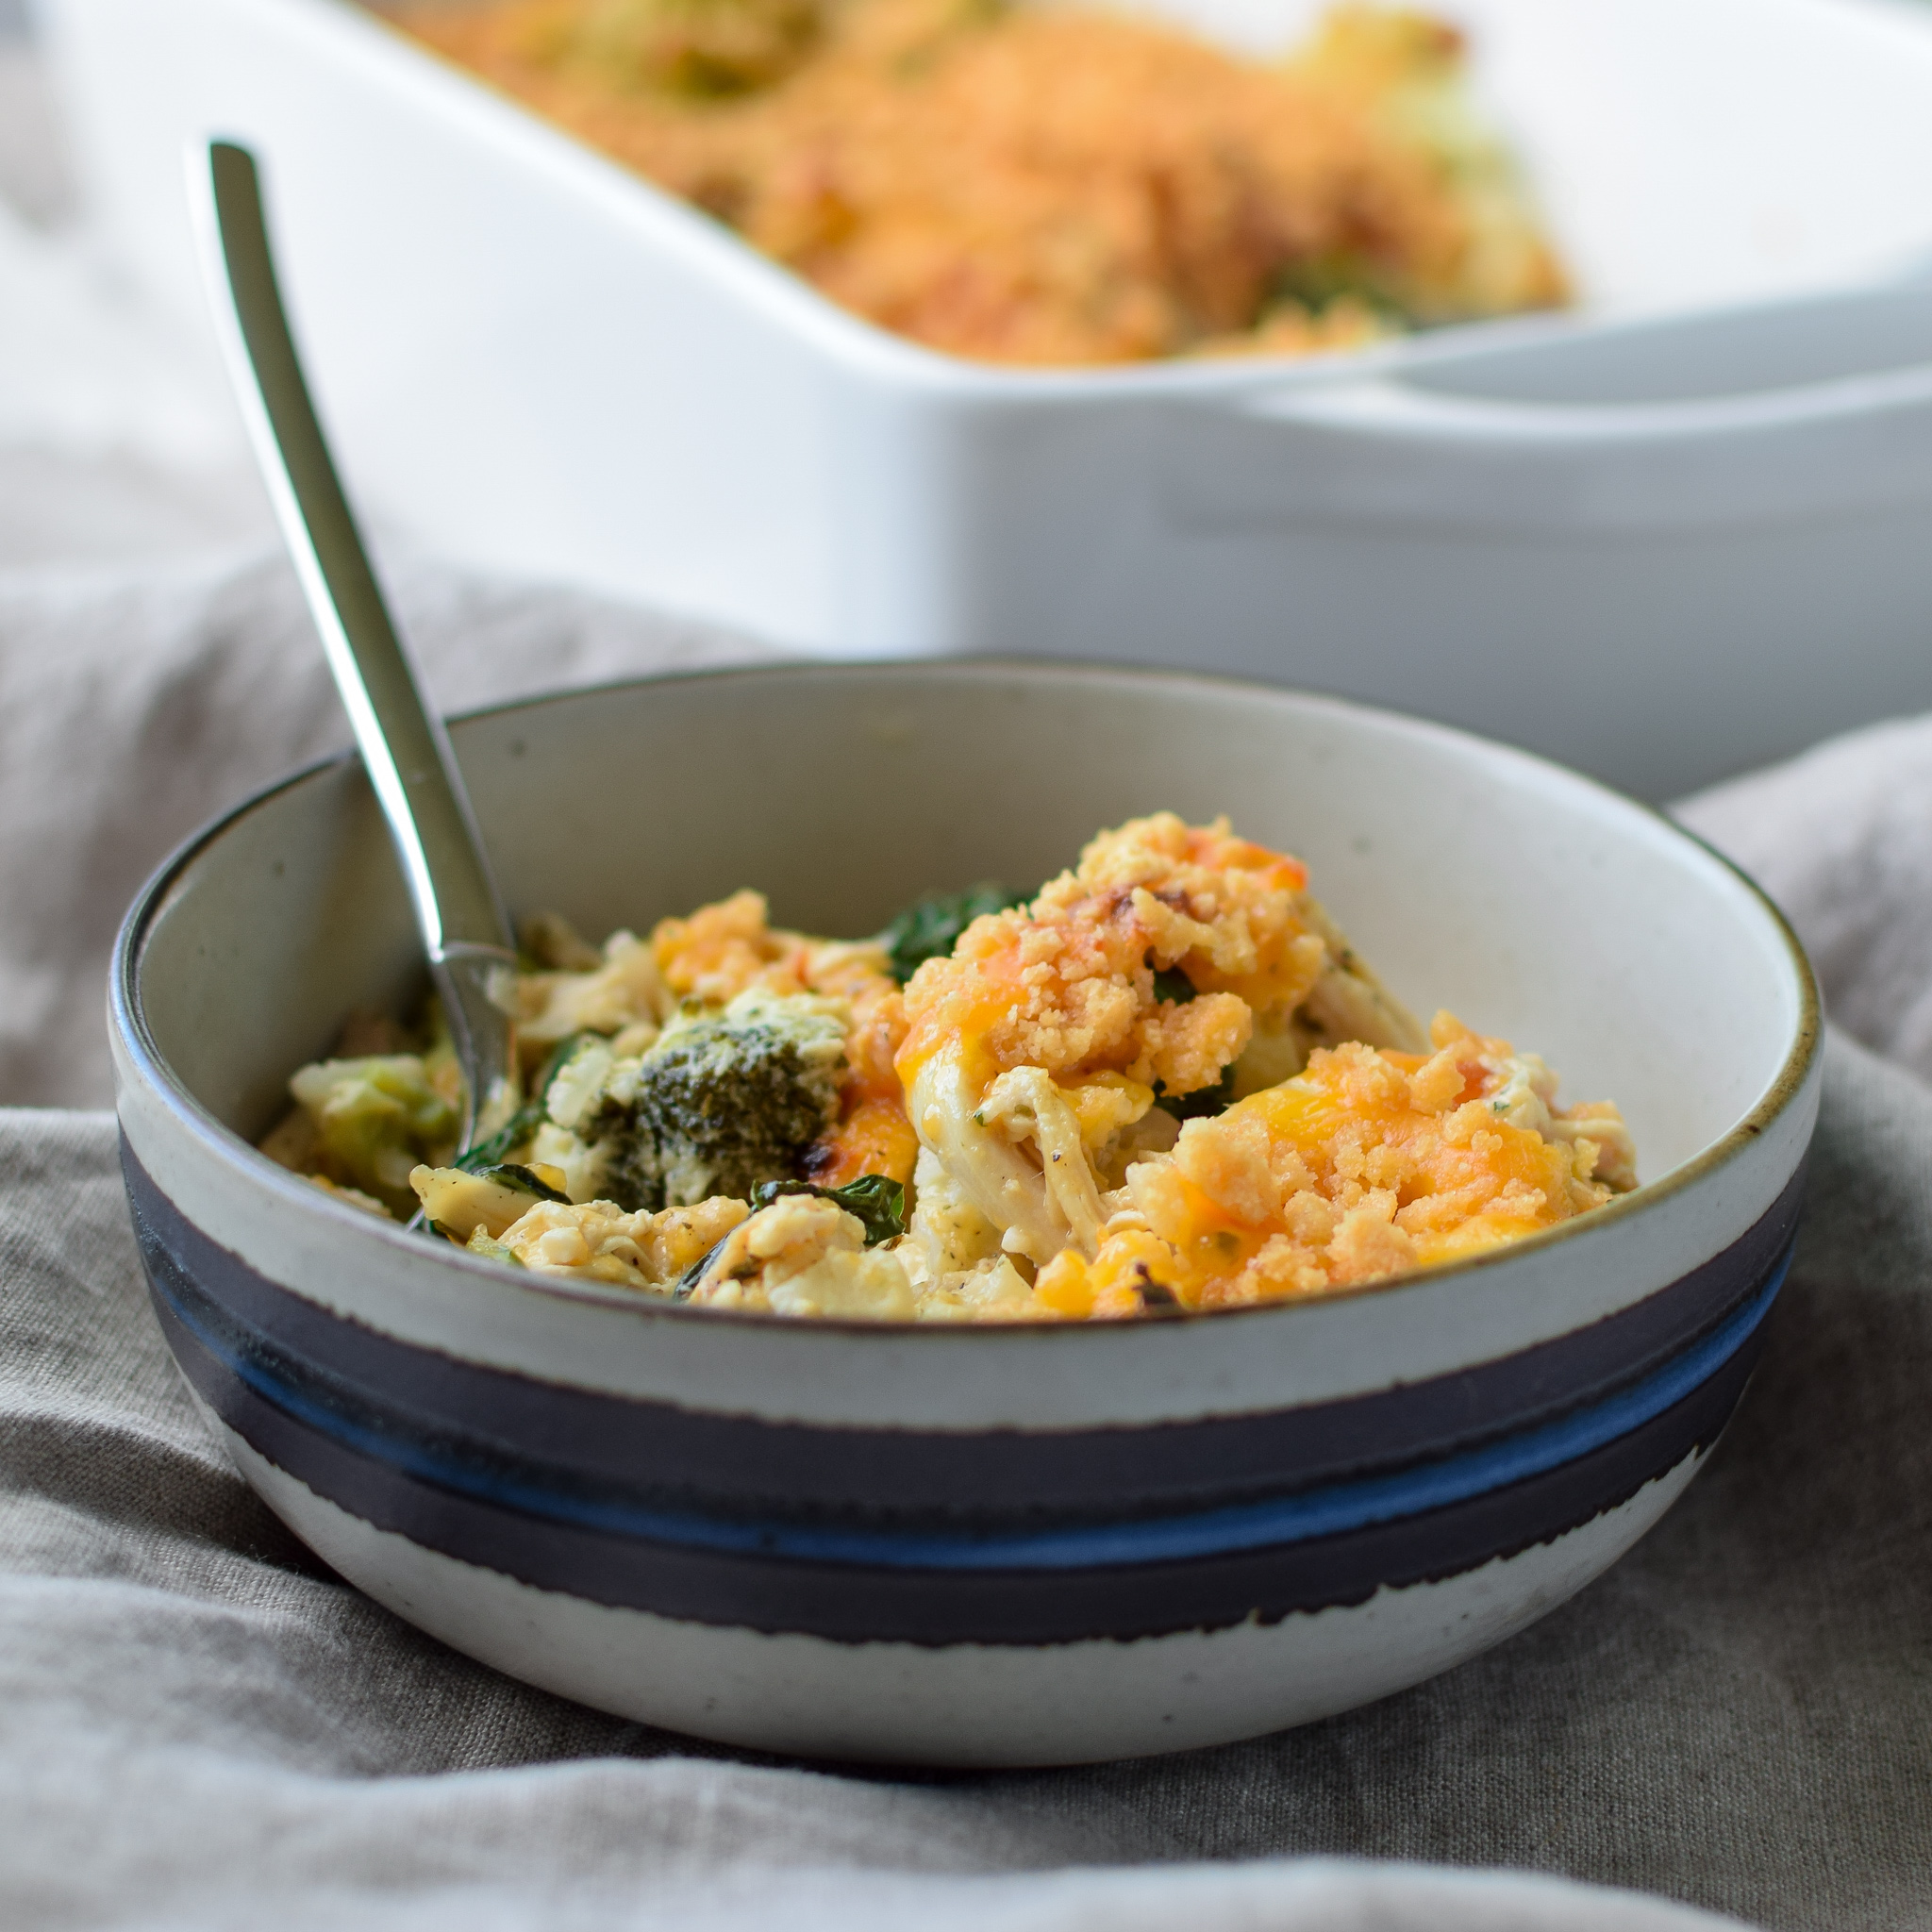 A fresh dished up bowl of Veggie Loaded Rotisserie Chicken Casserole.